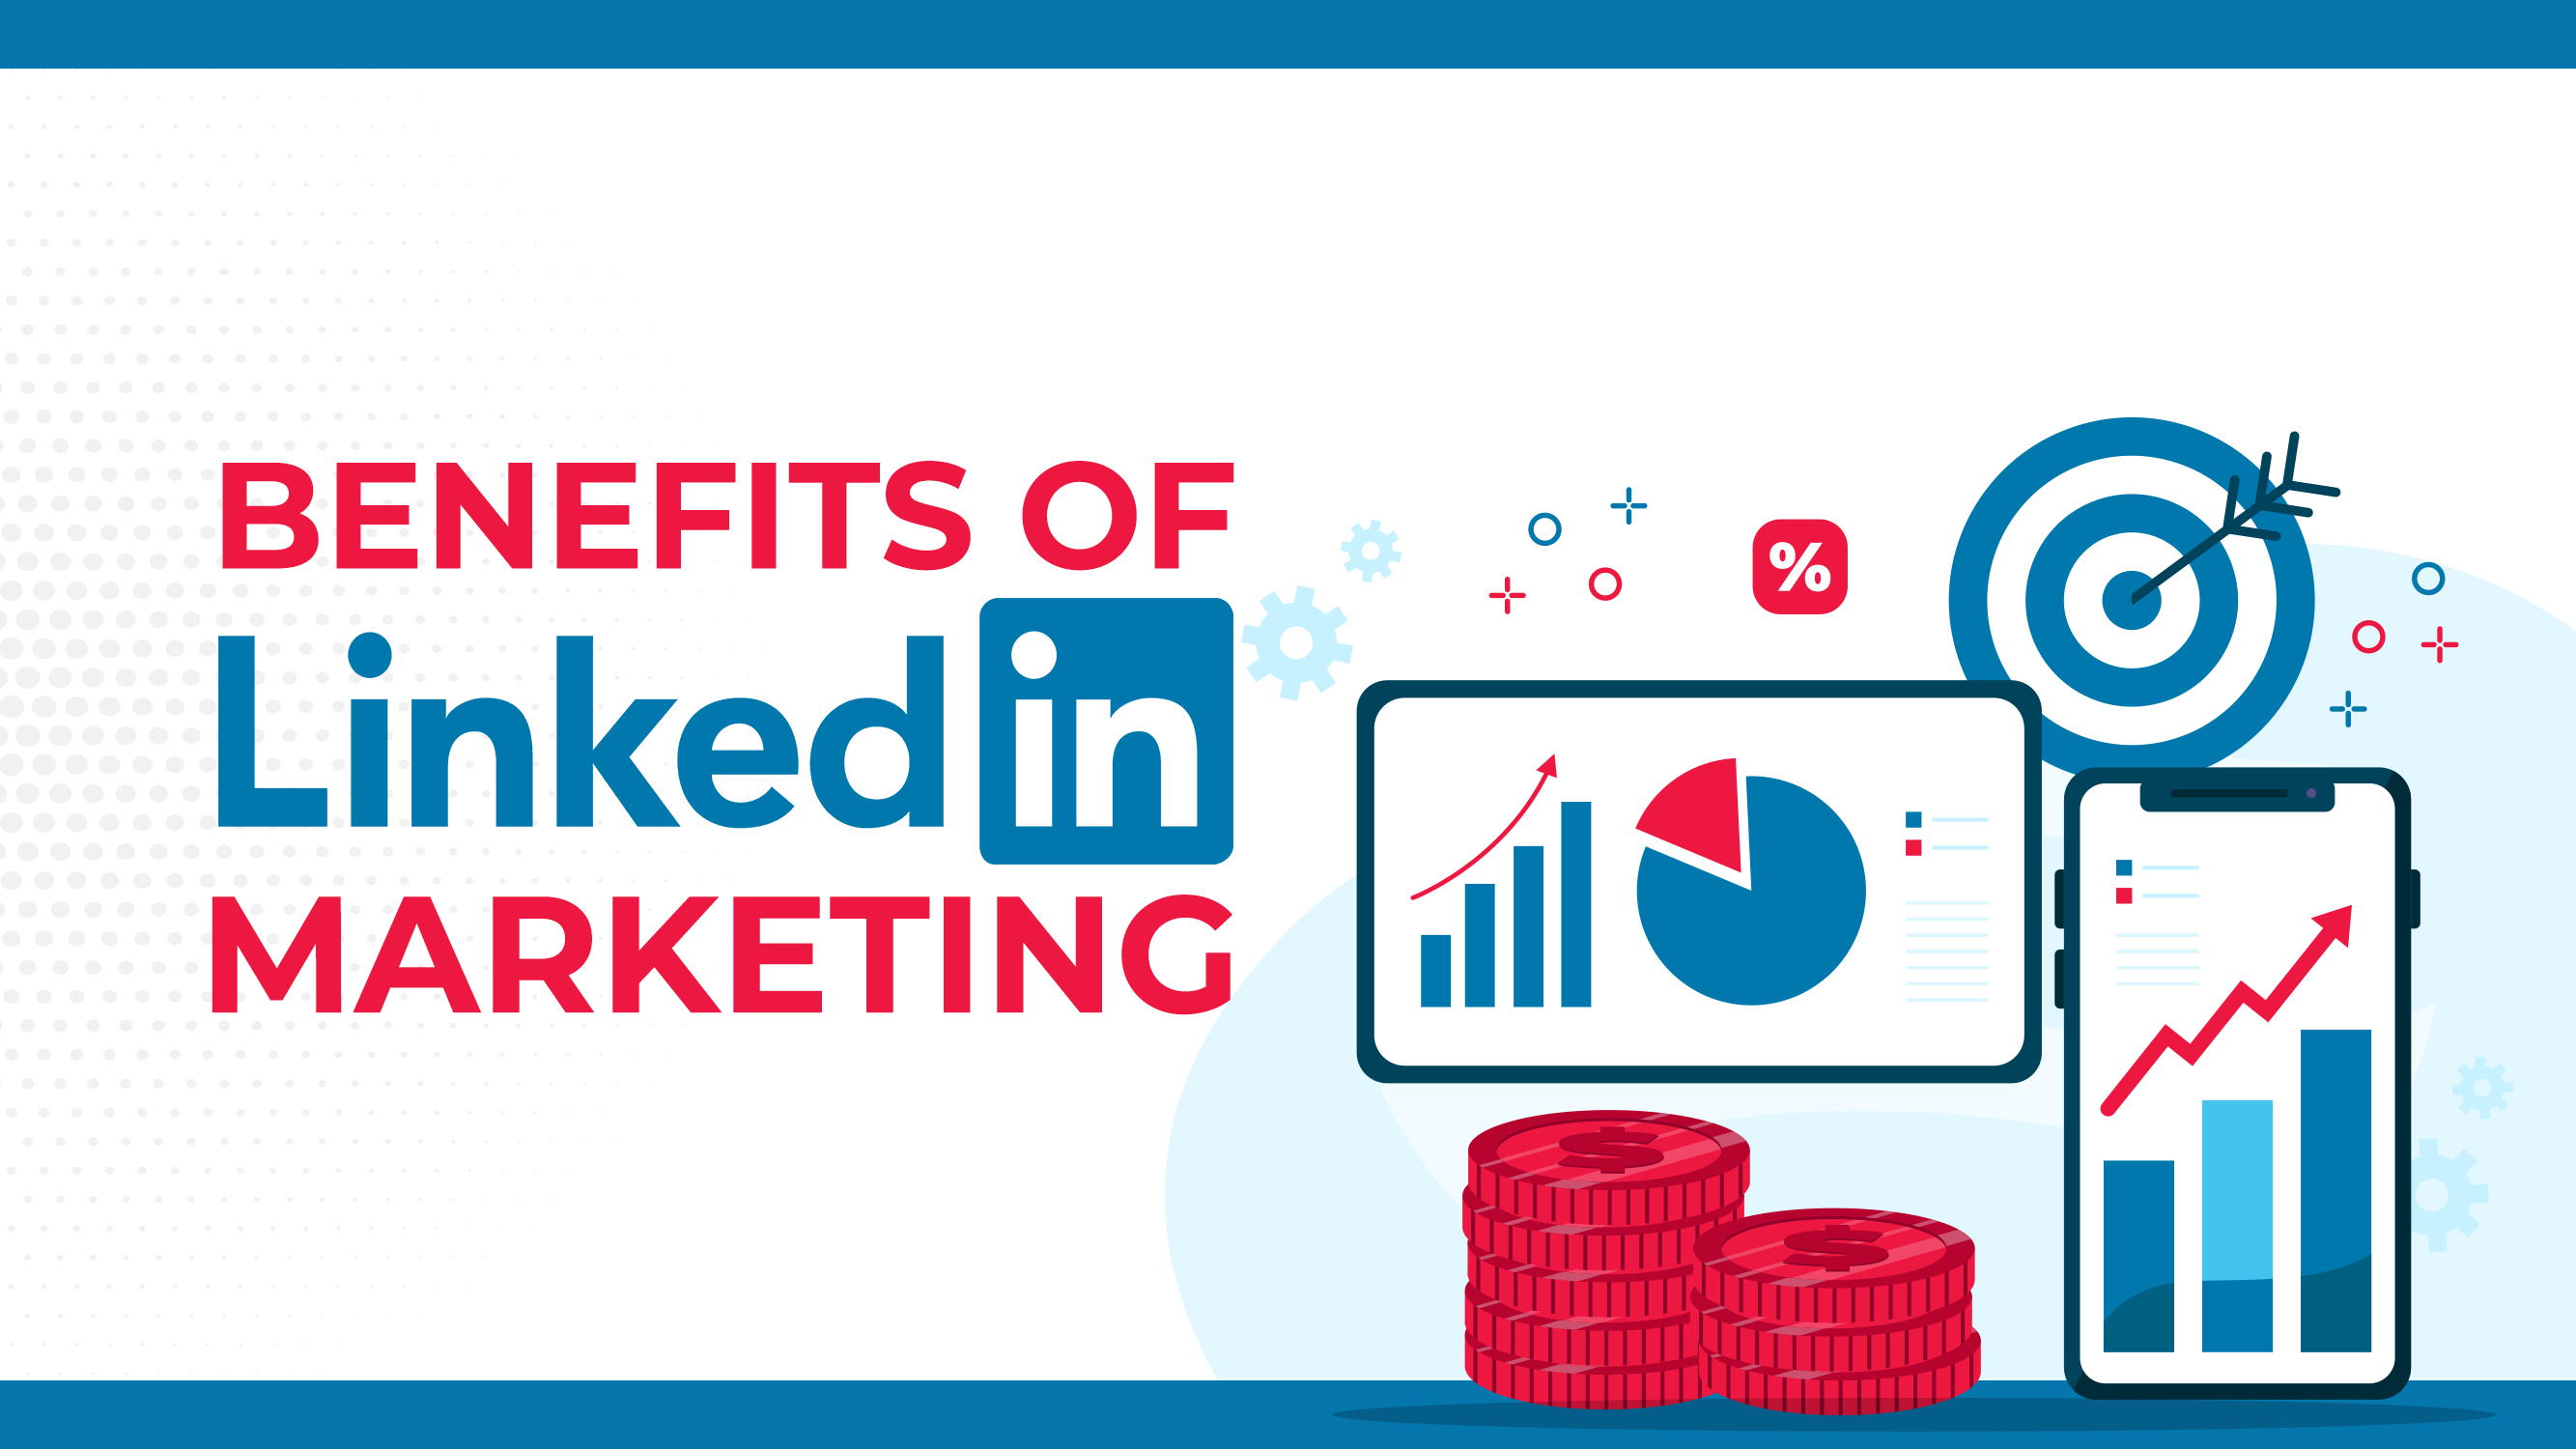 Benefits Of LinkedIn Marketing